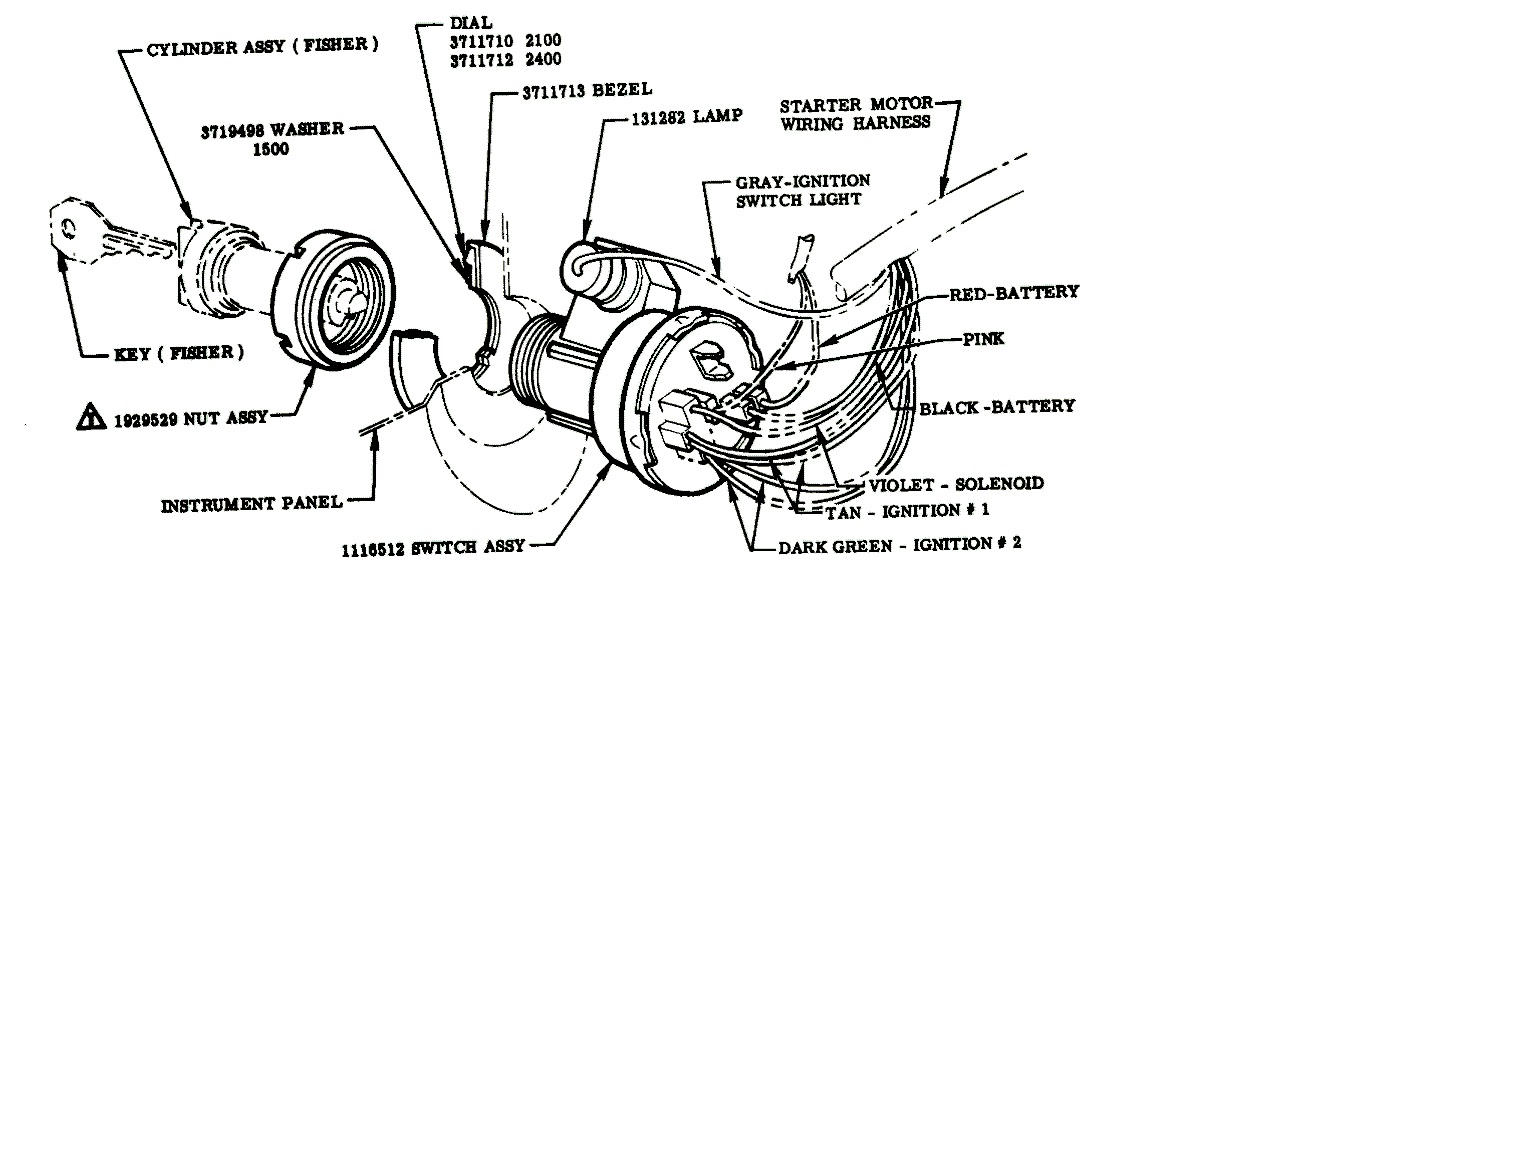 69 Chevy Alternator Wiring Library Truck 56 Chev Headlight Dimmer Switch Trusted Diagram Rh Dafpods Co 1956